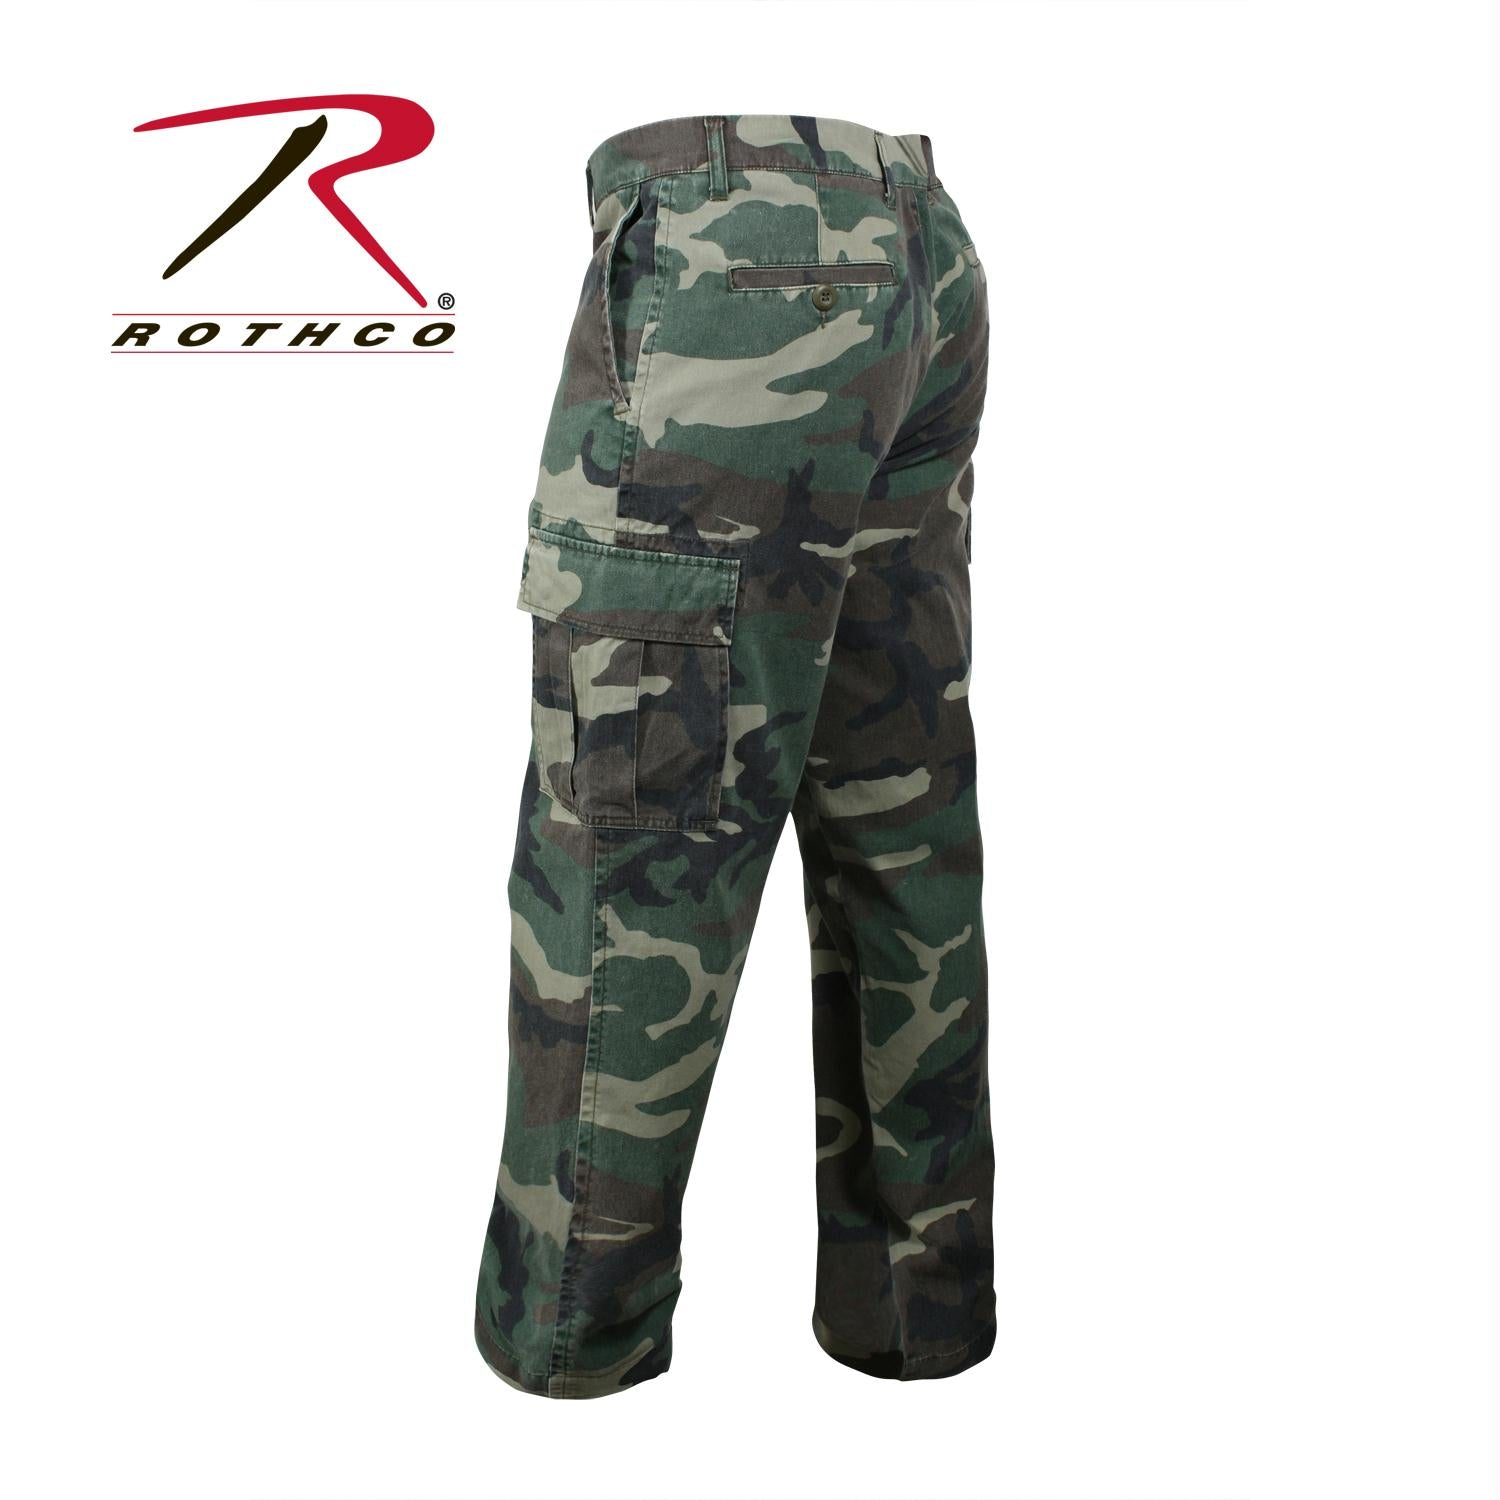 Rothco Vintage 6-Pocket Flat Front Fatigue Pants - Woodland Camo / 44